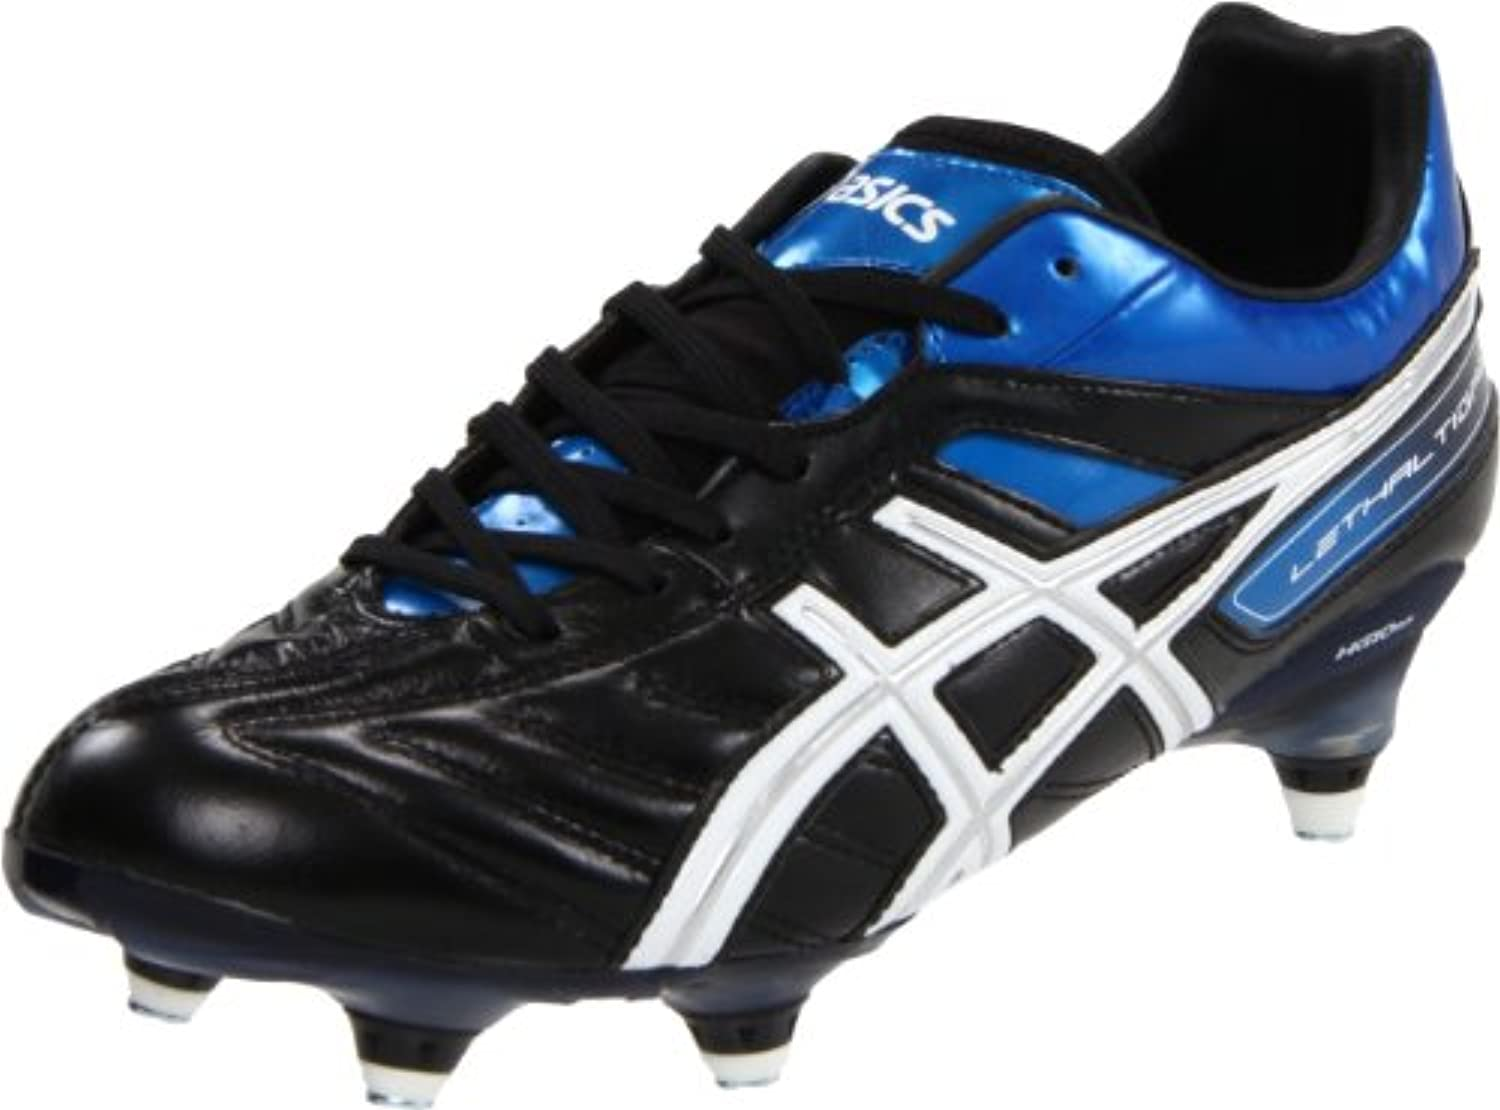 ASICS Men's Lethal Tigreor 4 ST Soccer Shoe Black/White/Pacific Blue 13 M US